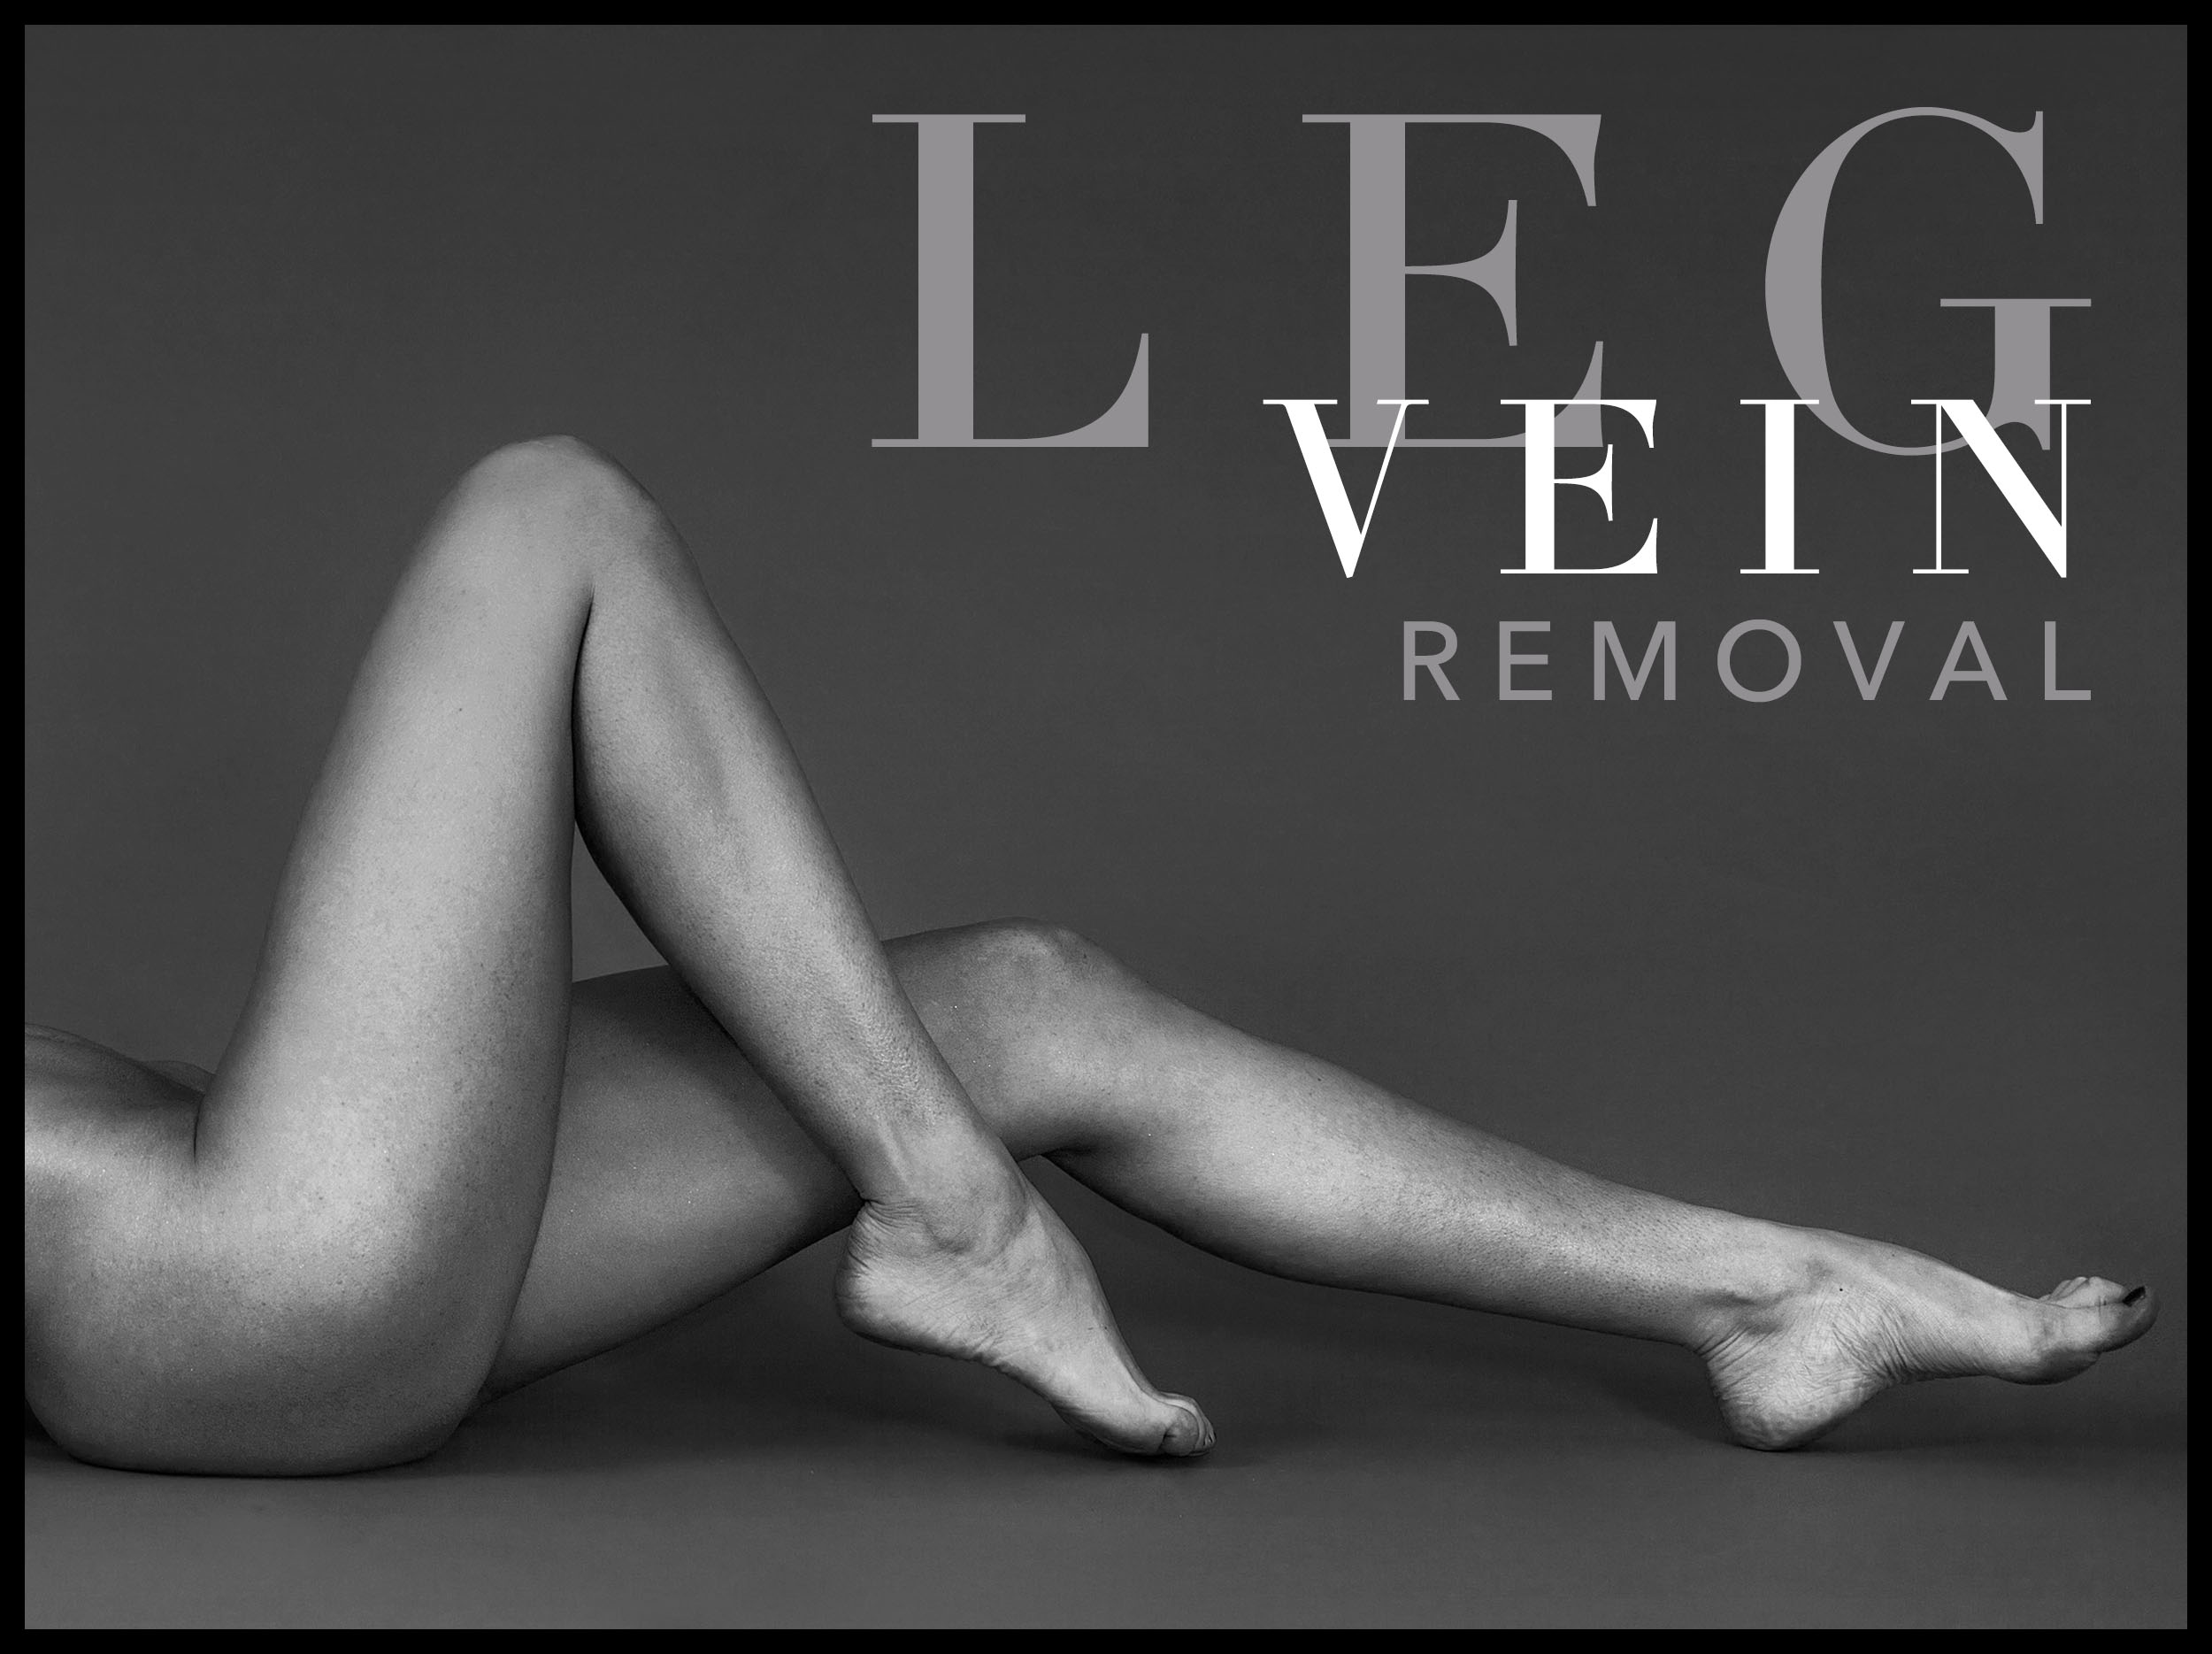 leg vein graphic.jpg